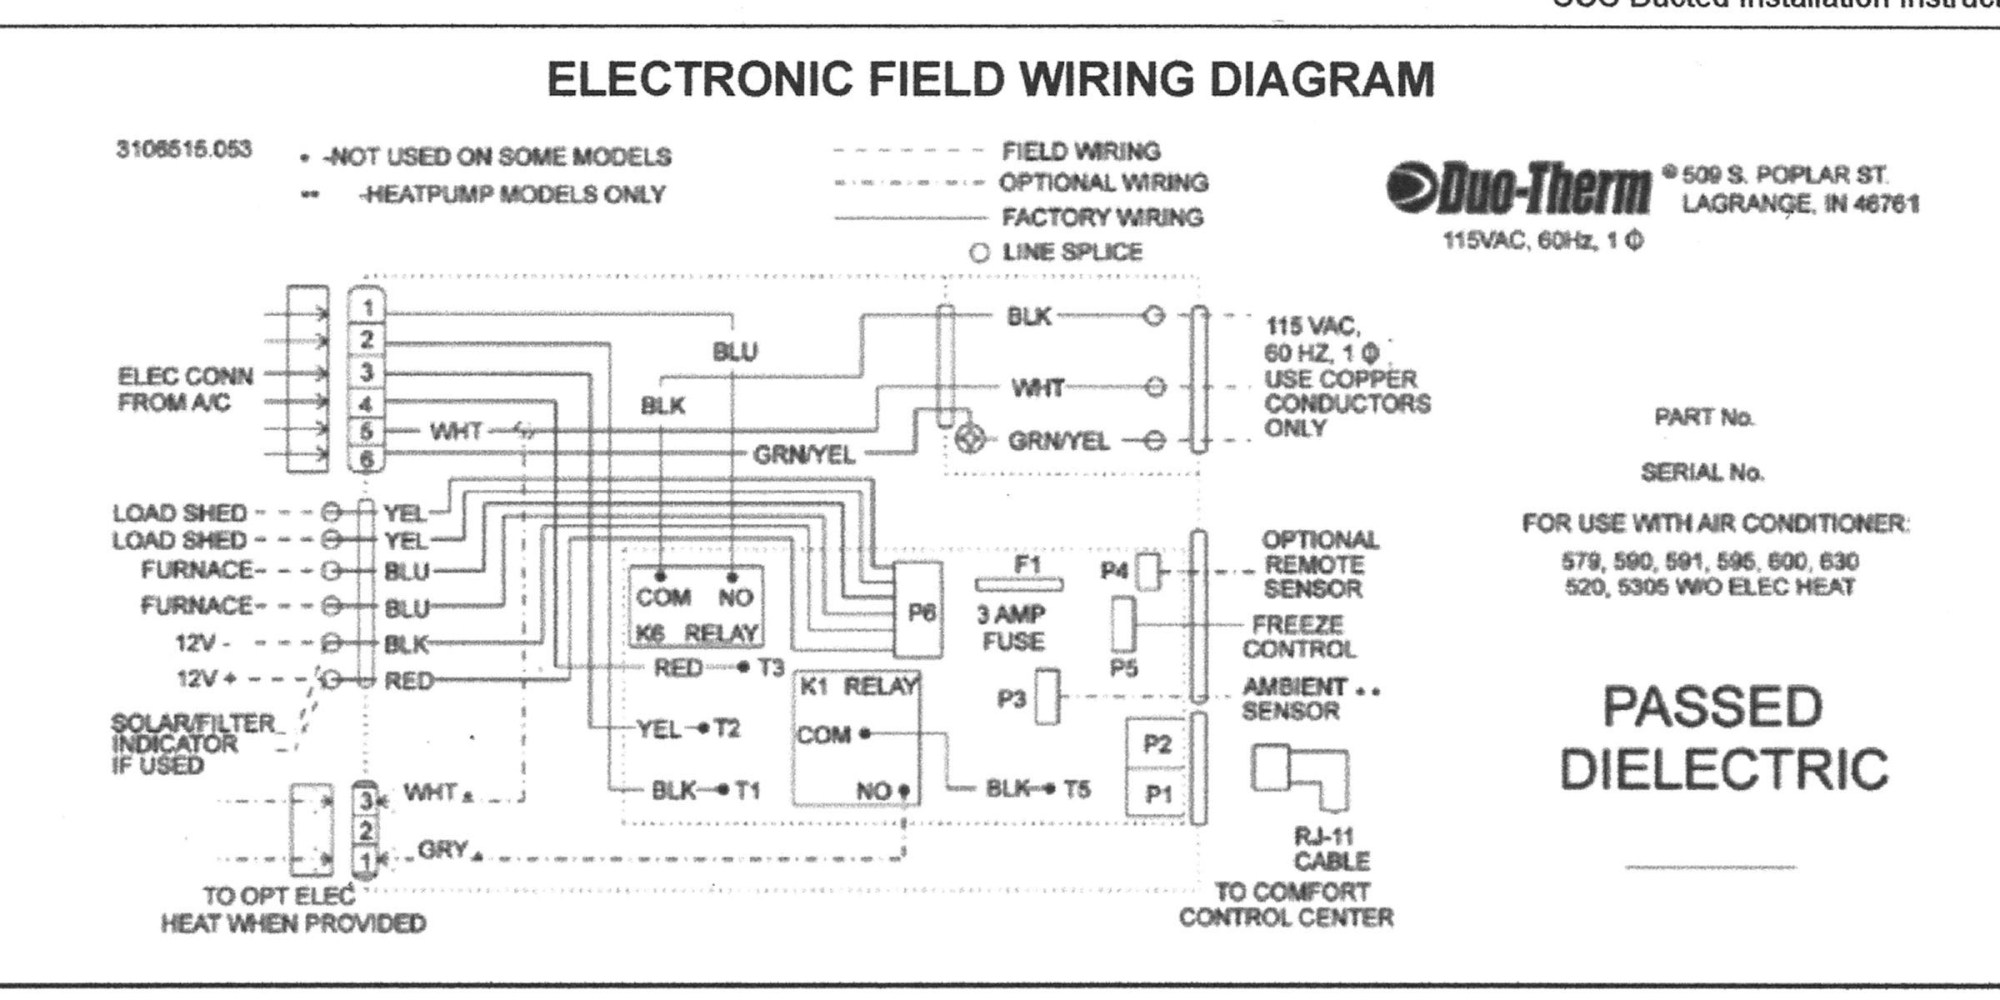 hight resolution of dometic thermostat wiring diagram dometic ac wiring diagram detailed schematics diagram of dometic thermostat wiring diagram